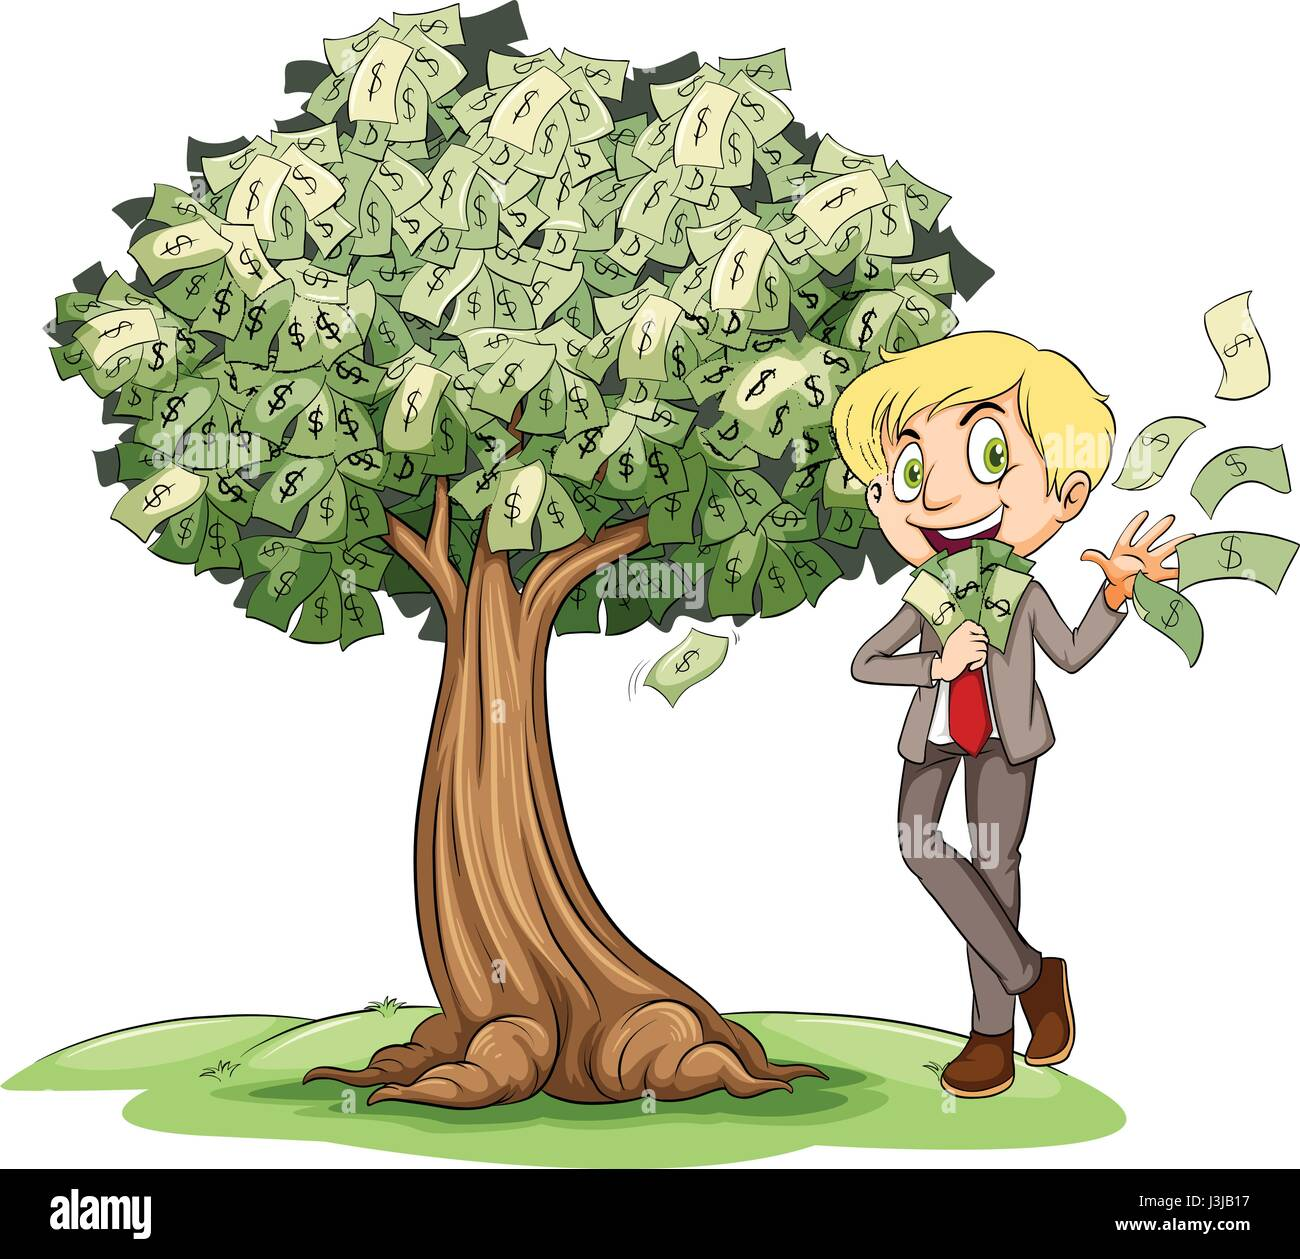 Rich man with money on tree illustration - Stock Vector